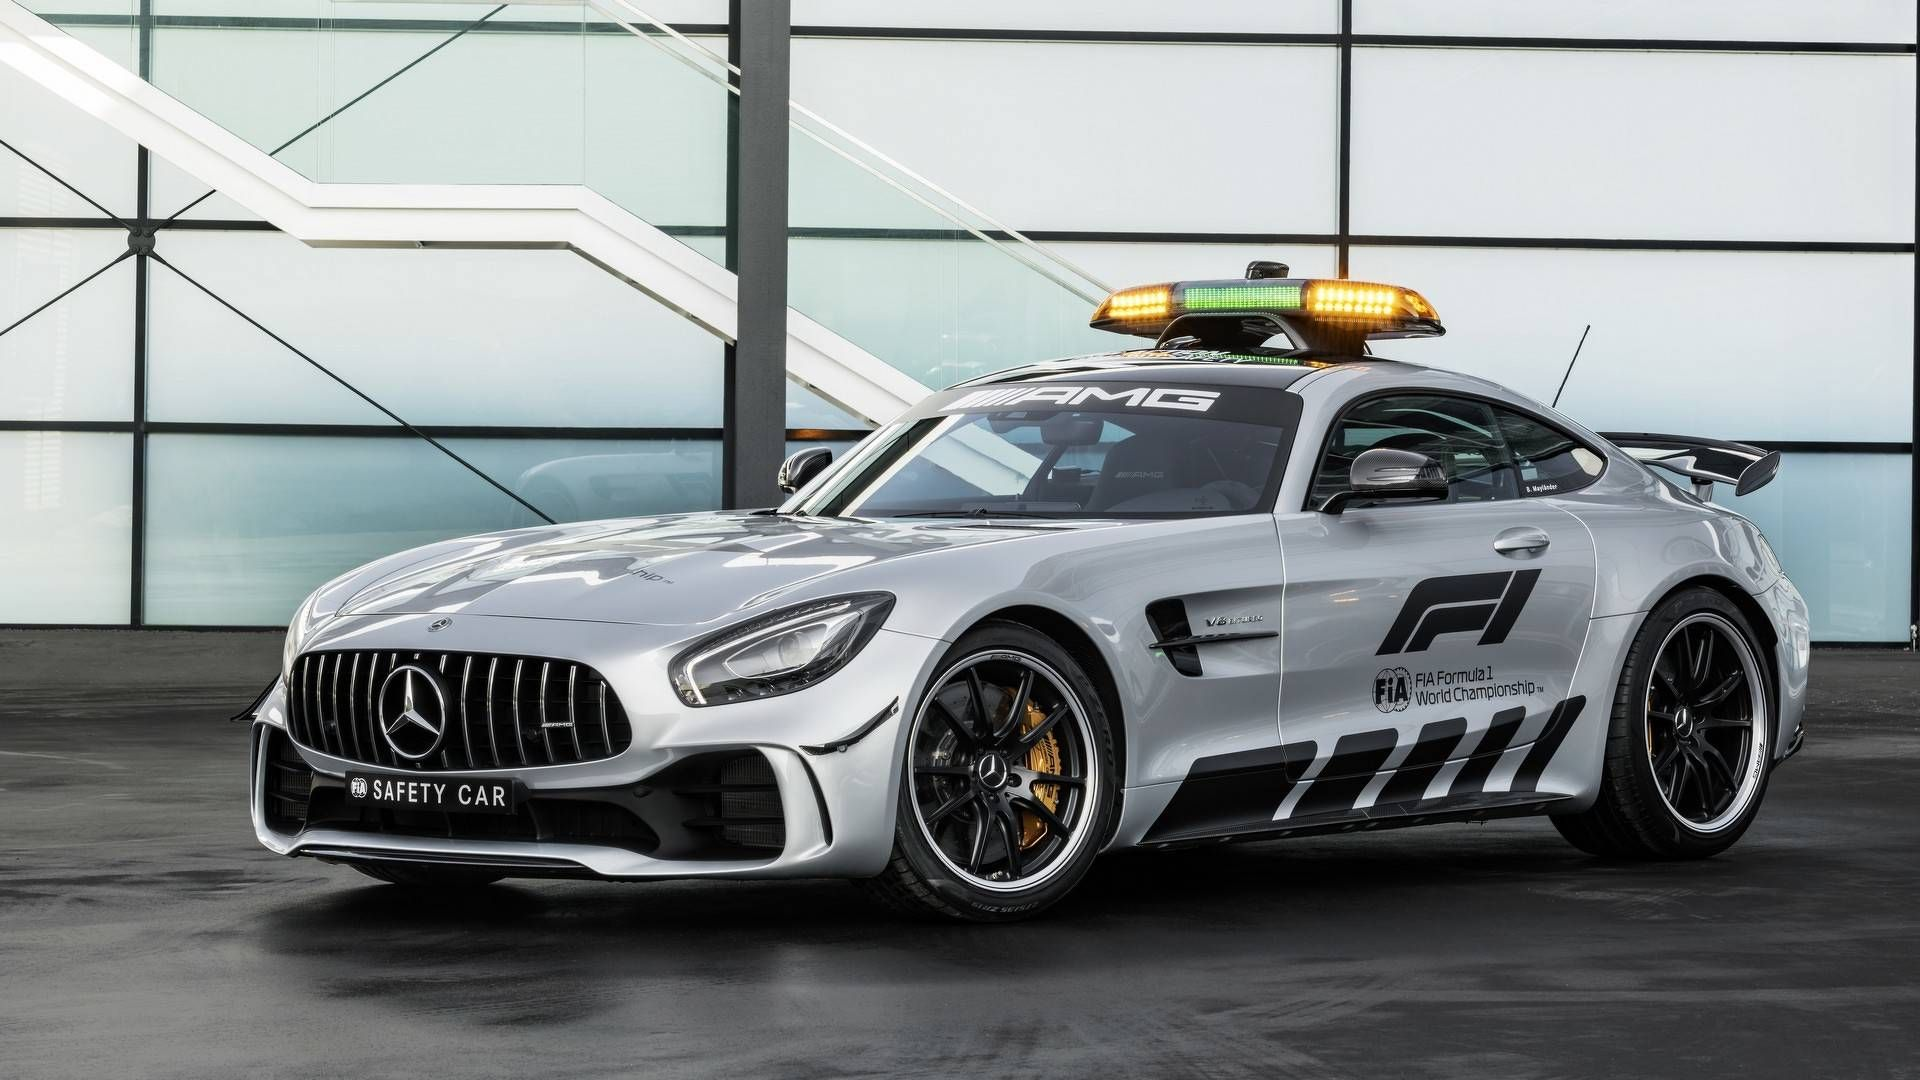 Mercedes AMG GT R Revealed As The Most Powerful F1 Safety Car Ever